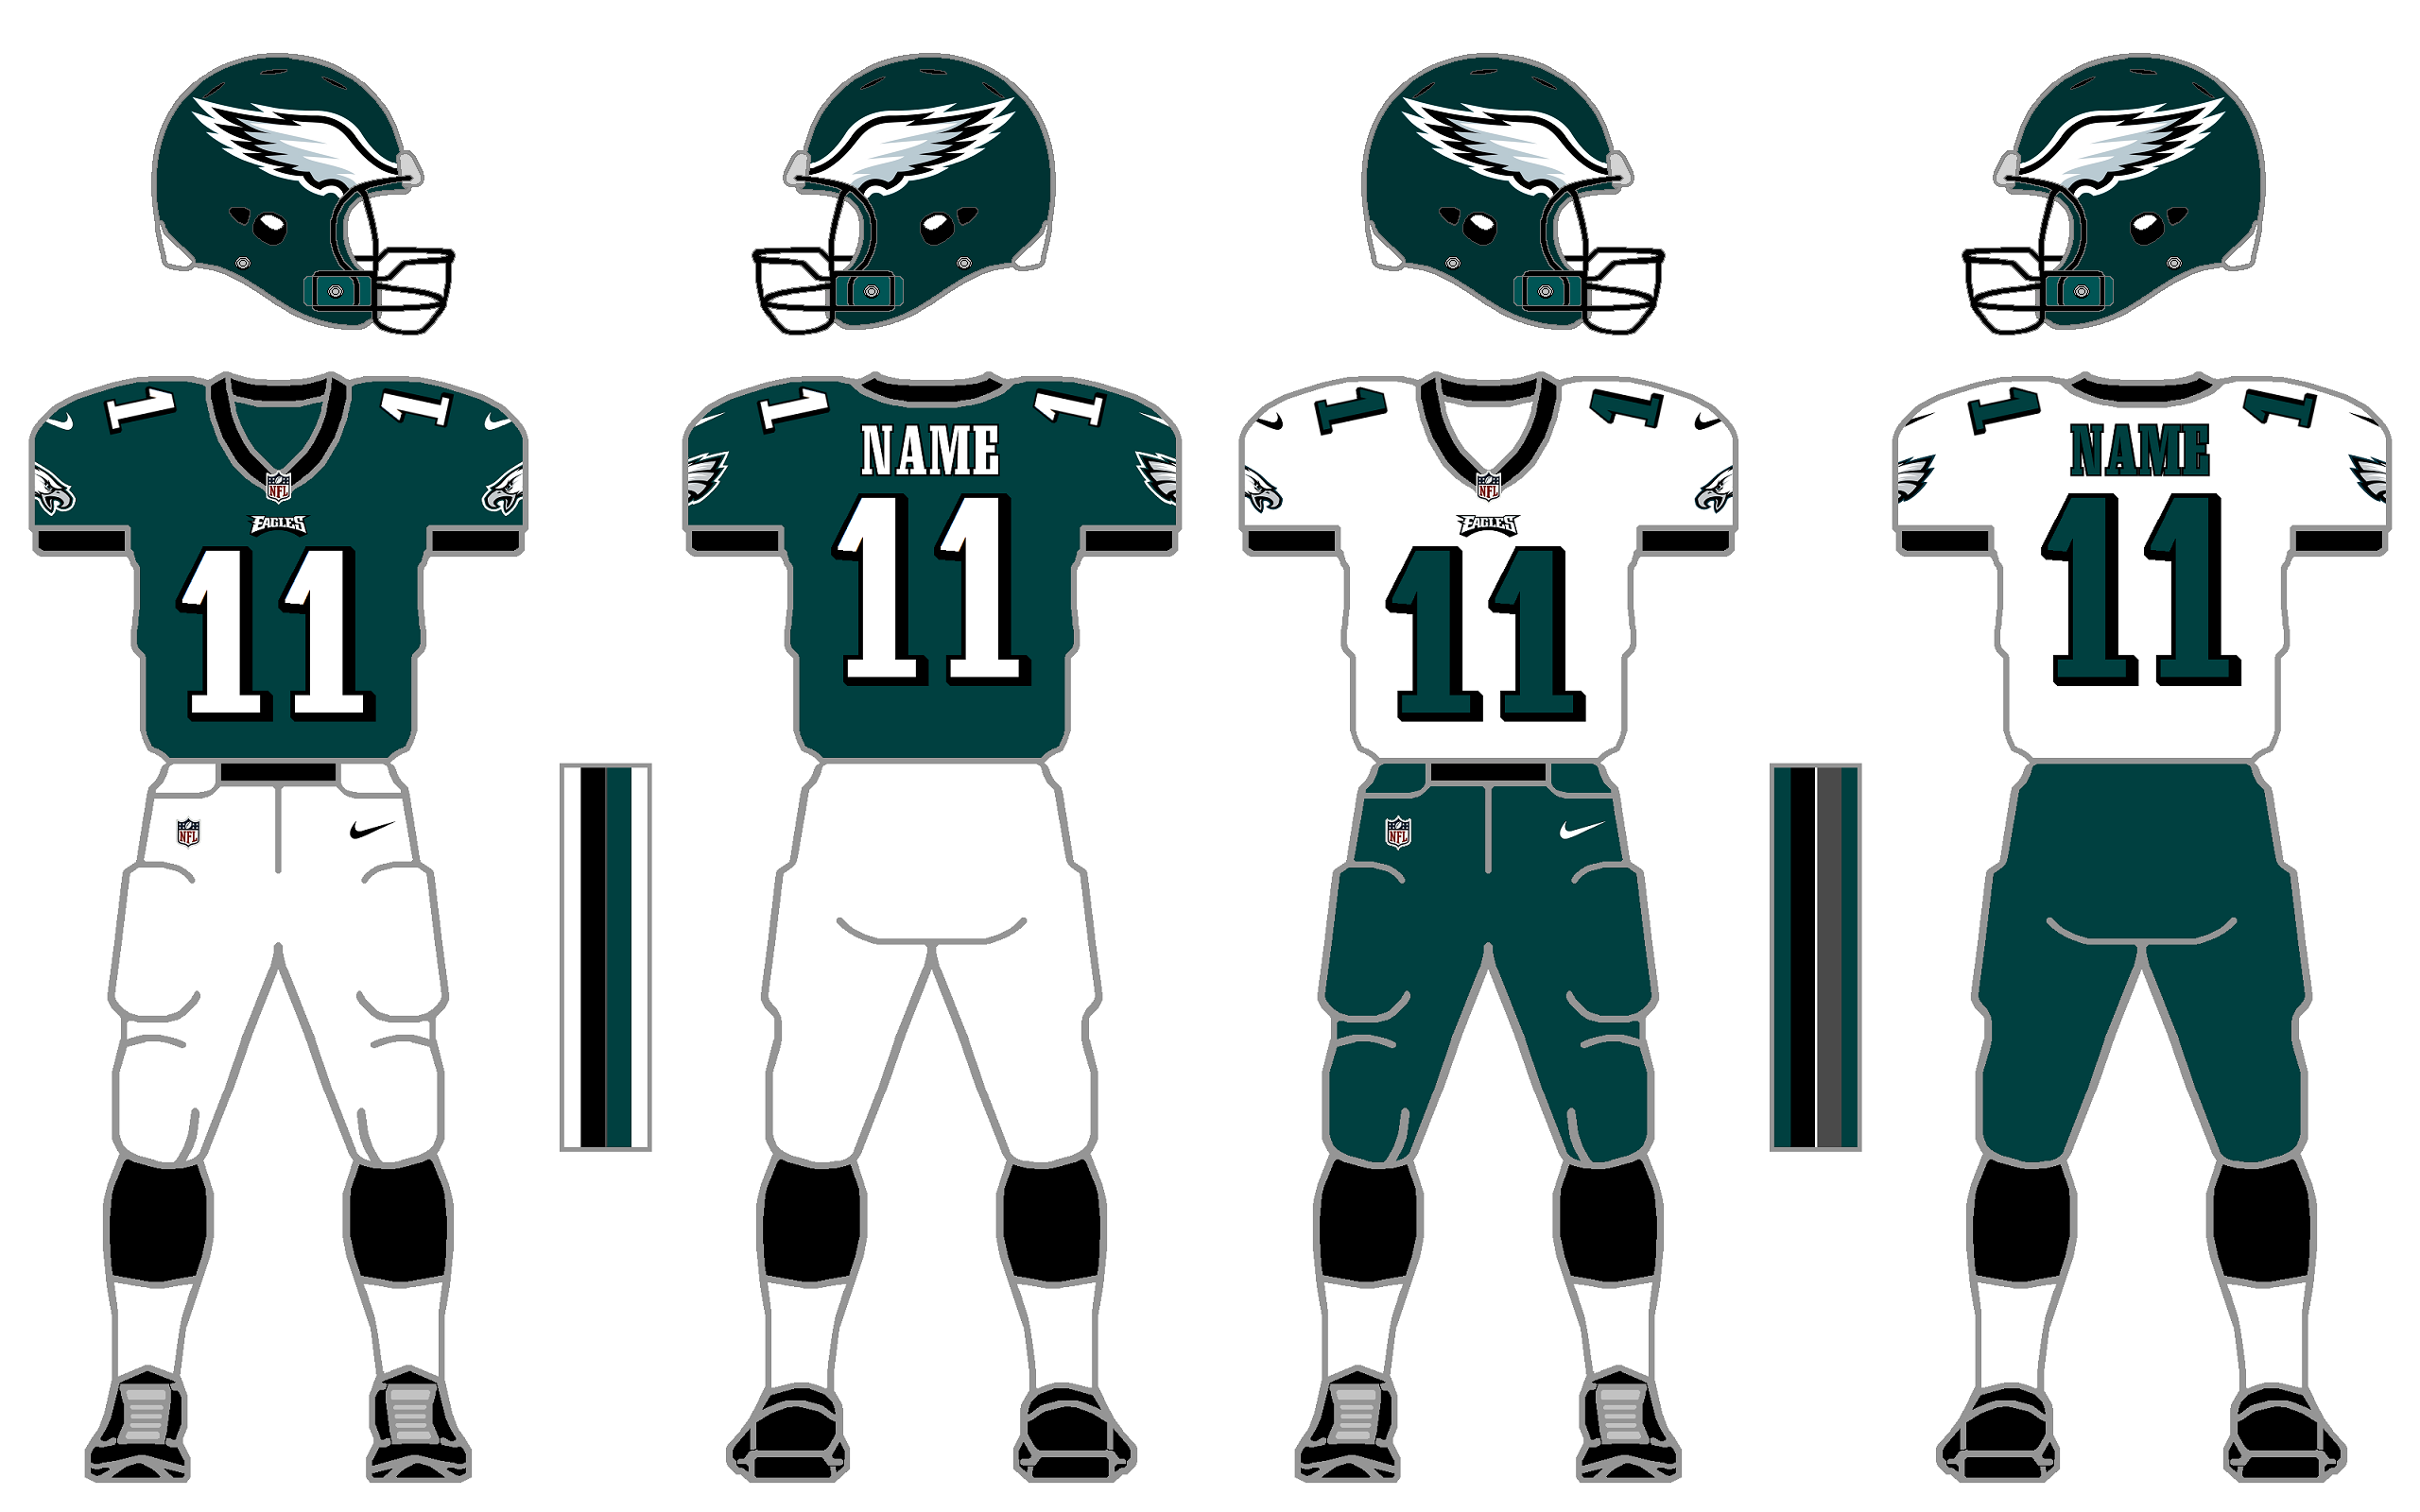 dylan sprouse facebook realNew Eagles Uniforms